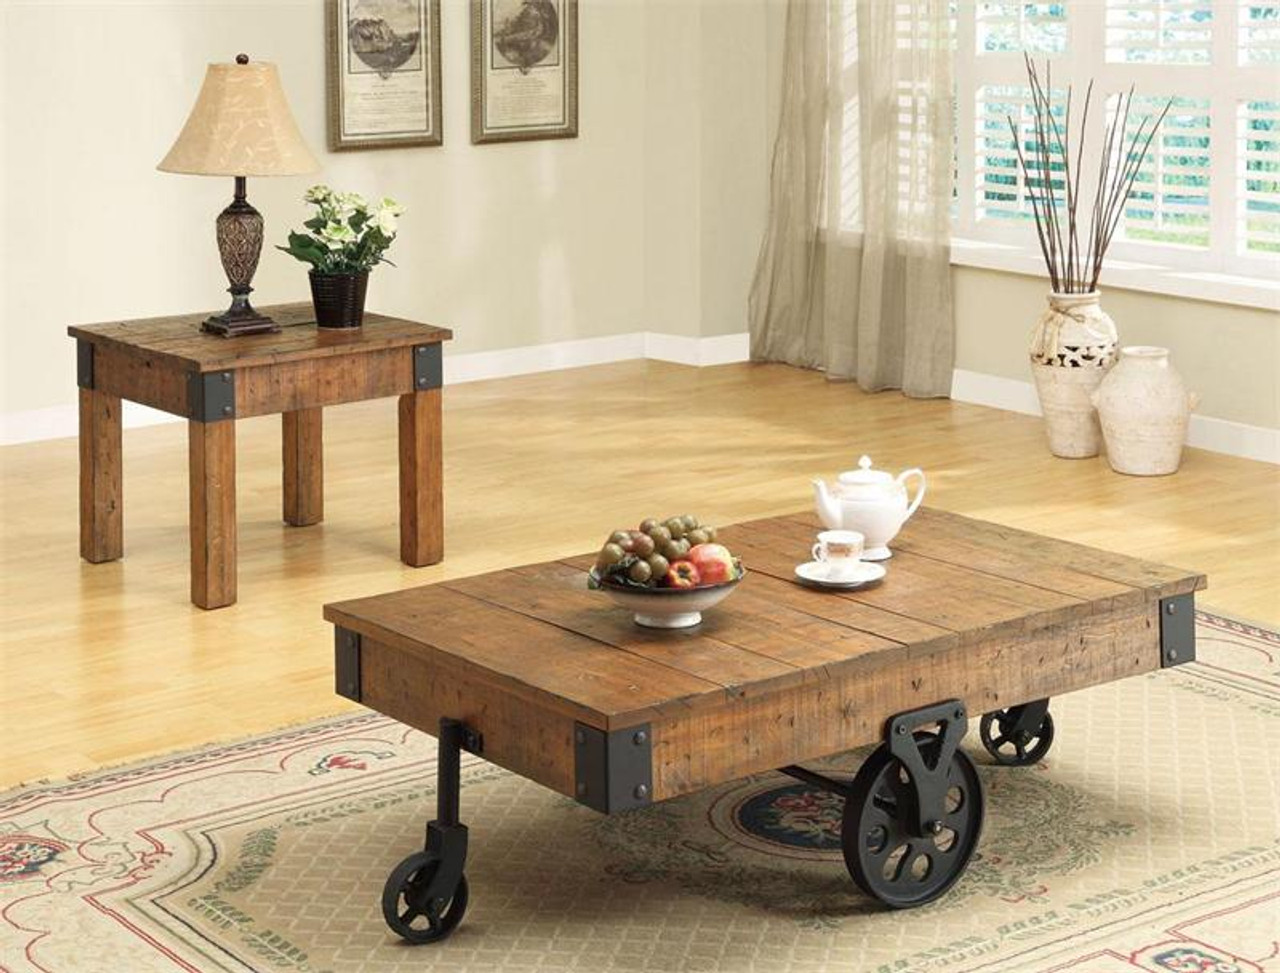 - Country Rustic Industrial Style Coffee Table On Wheels